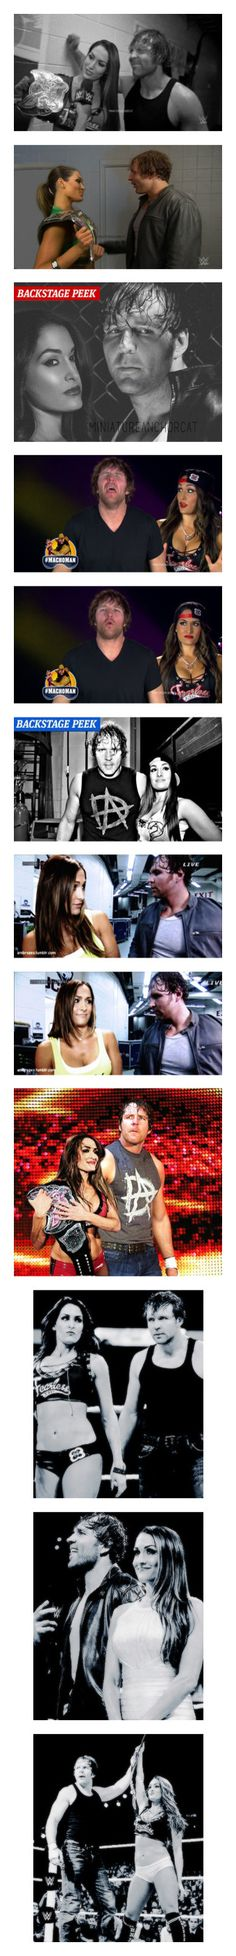 """""""Ships ~ NikkiRose ( Nikki Bella and Dean Ambrose manips/edits )"""" by swaggwweforever ❤ liked on Polyvore"""